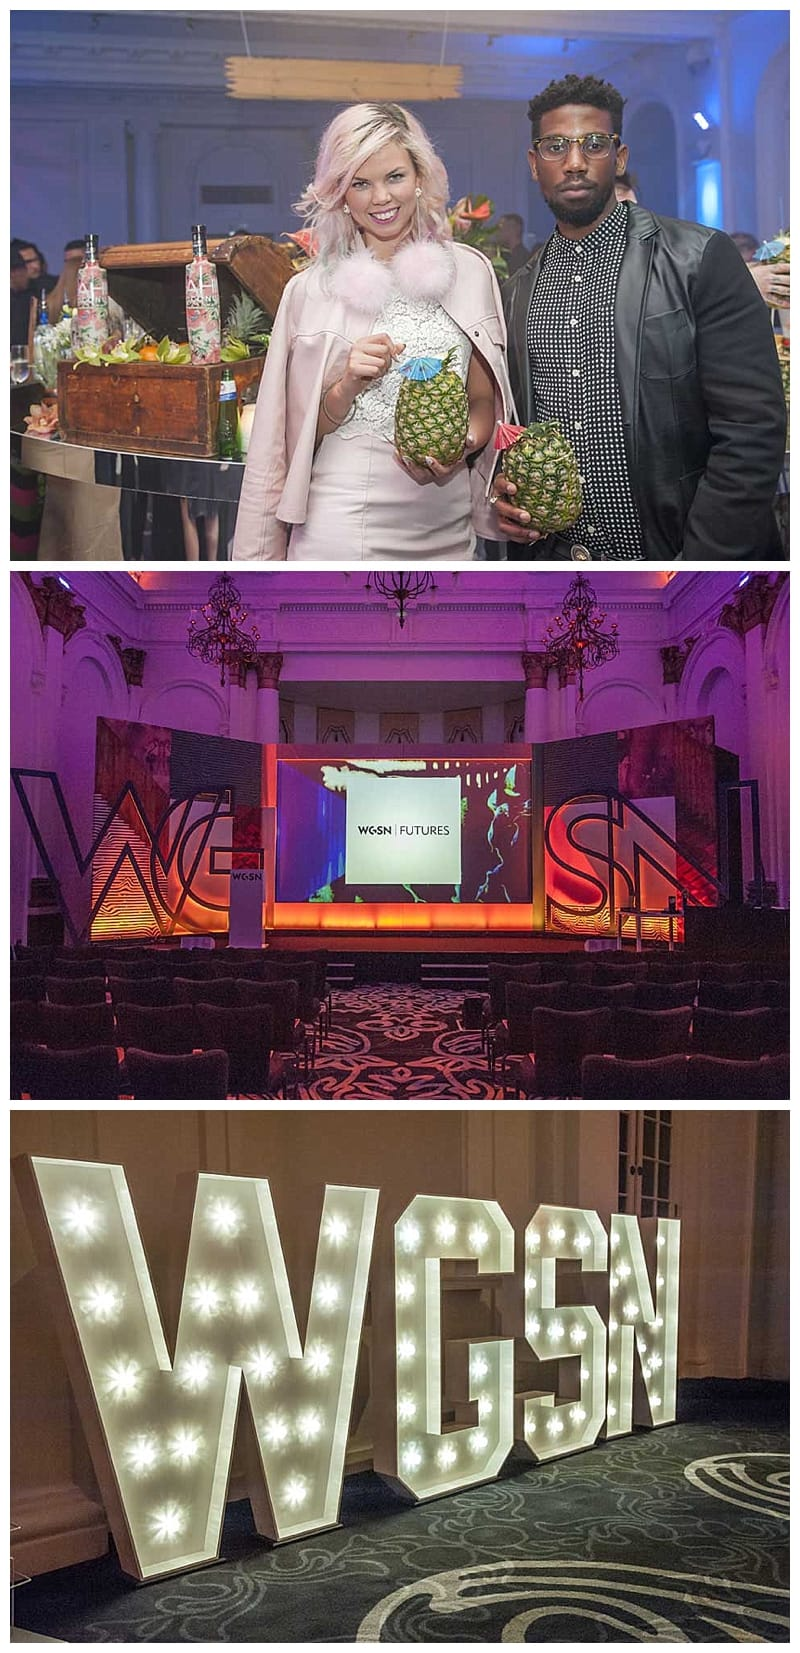 wgsn-conference-benjamin-wetherall-photography-0034